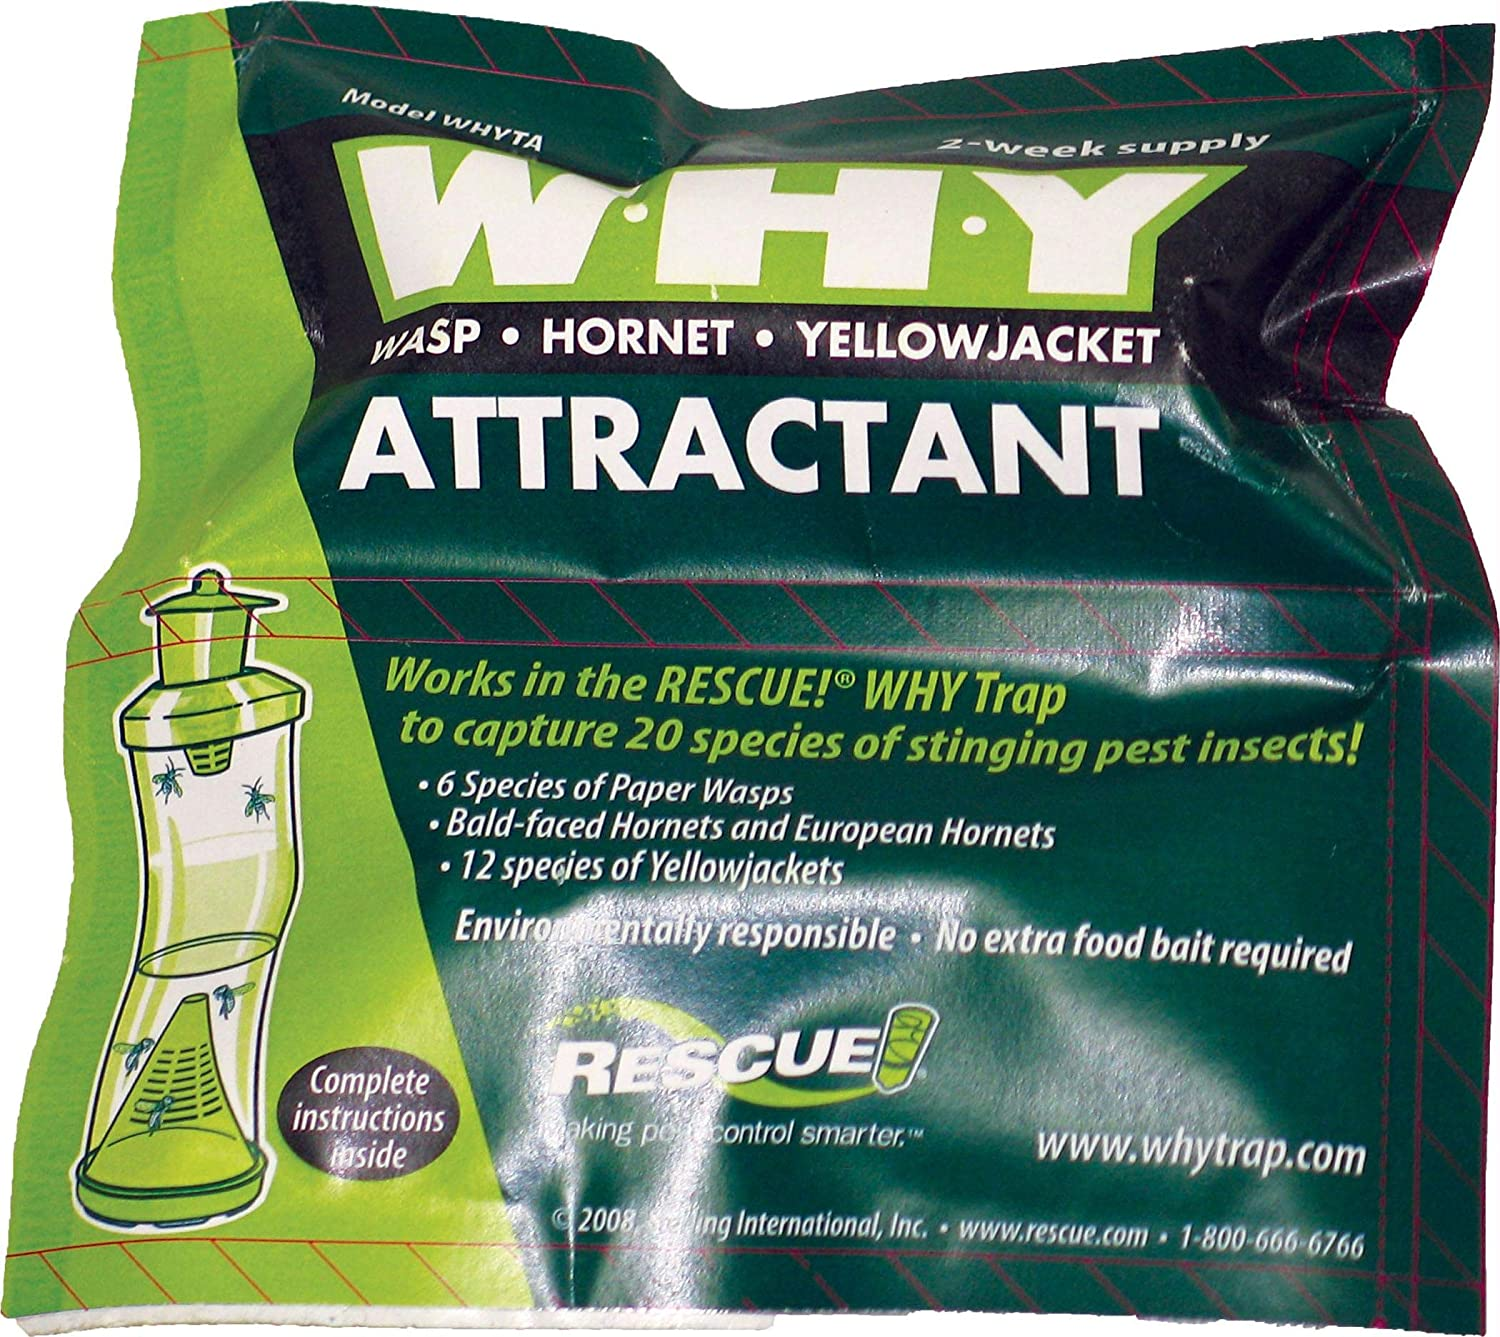 STERLING INTRNTL RESCUE W-H-Y TRAP WASP HORNET & YELLOWJACKET ATTRACTANT 2 WEEK SUPPLY STERLING INTERNATIONAL BCI077915